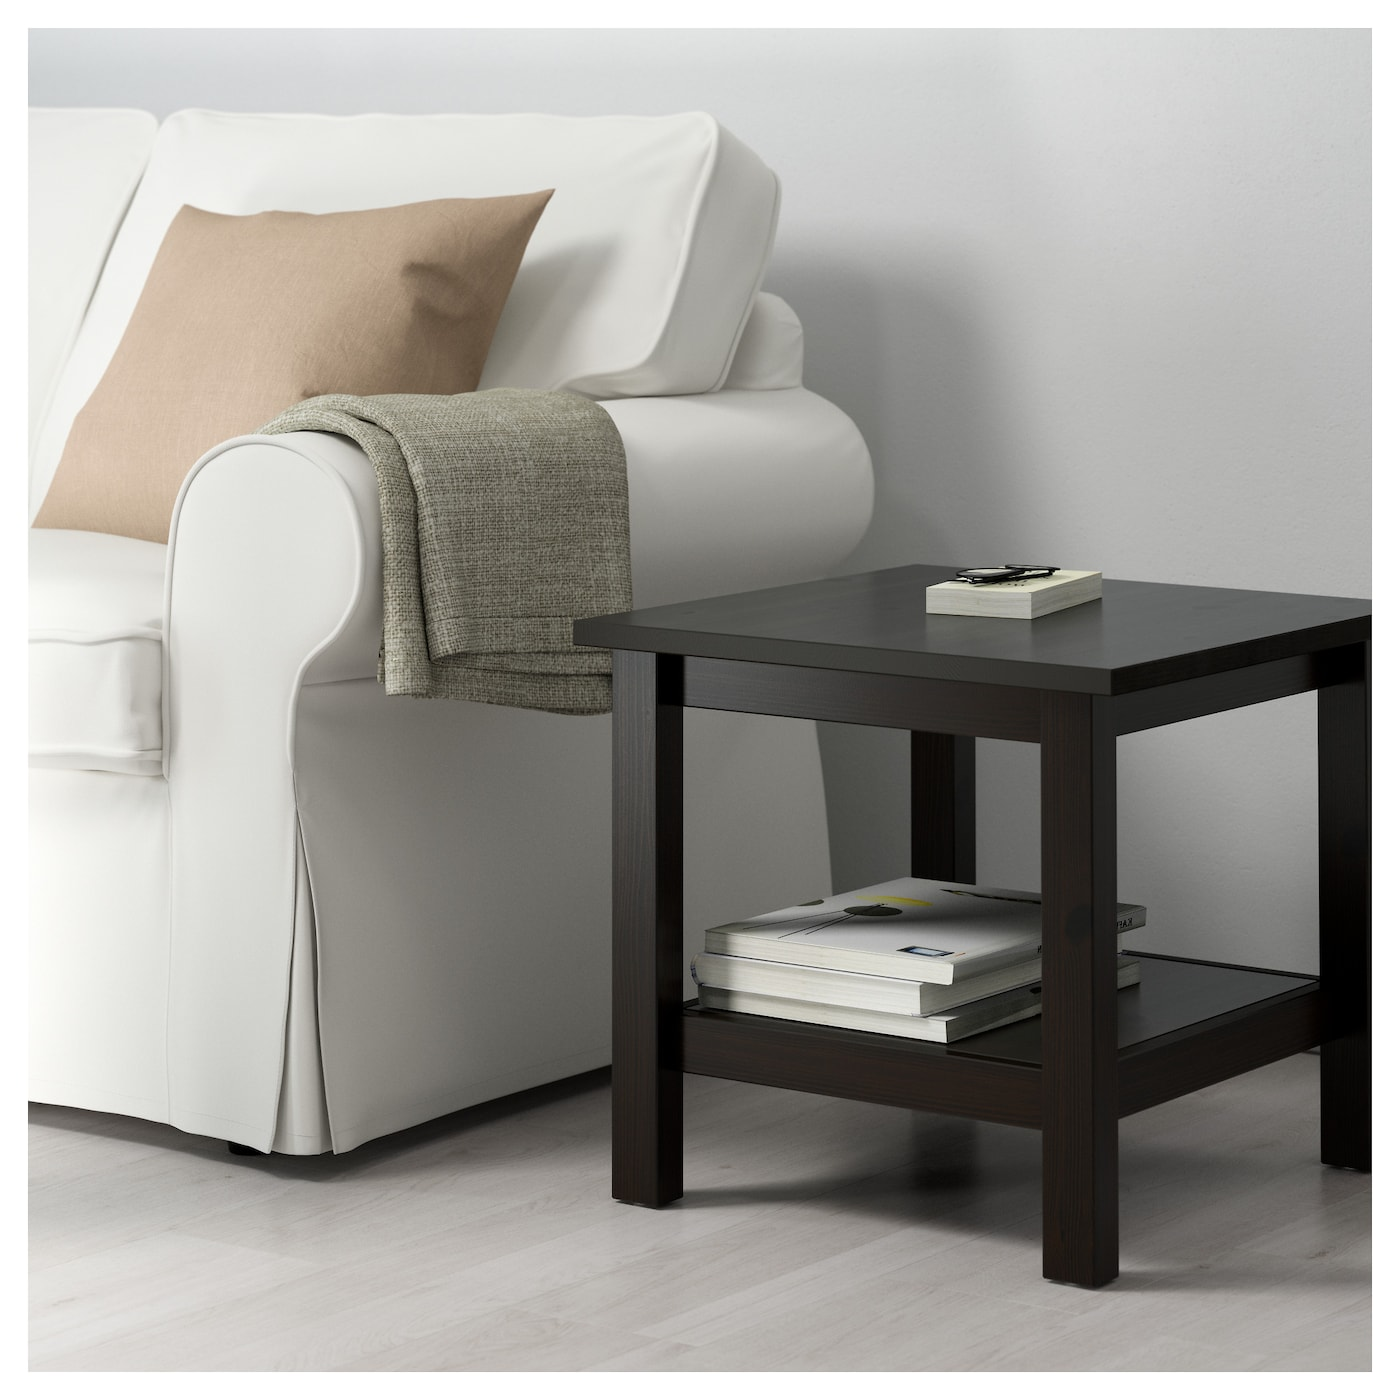 Hemnes Coffee Table White Stain 118x75 Cm: HEMNES Side Table Black-brown 55x55 Cm